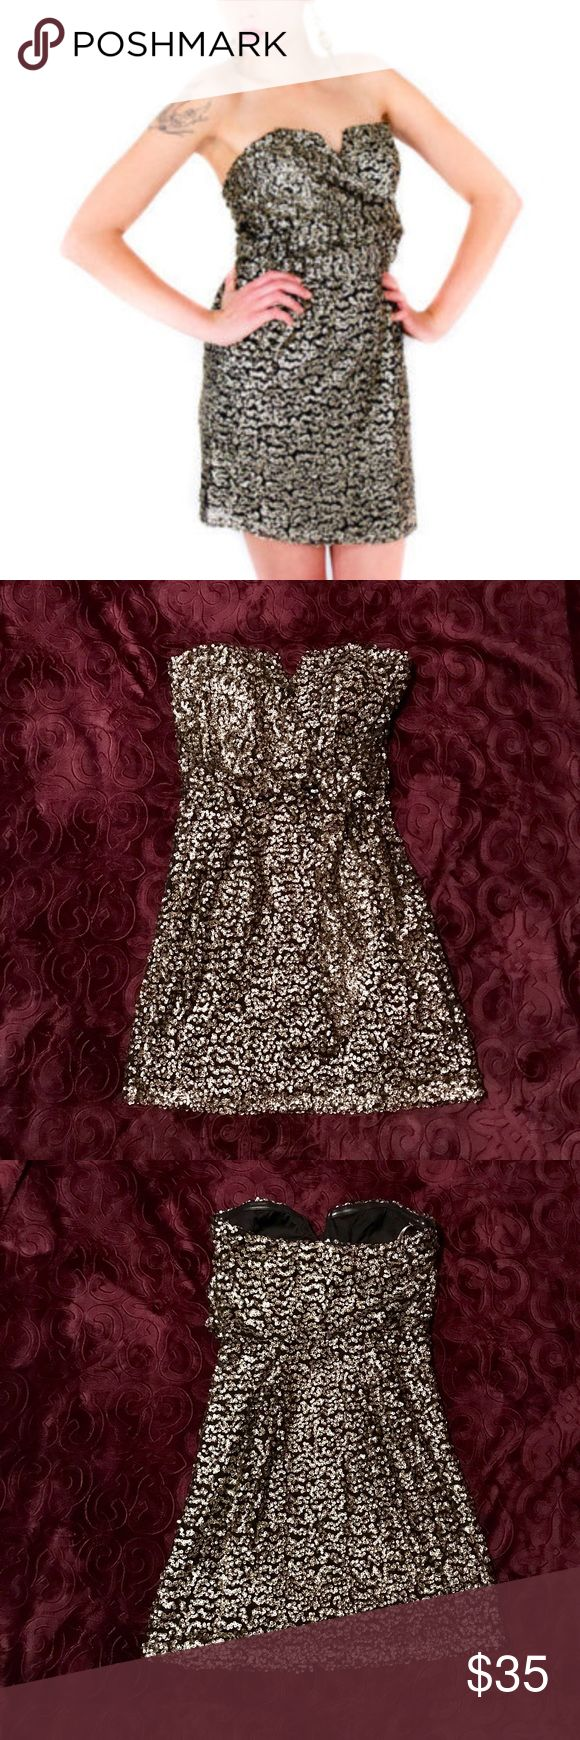 Charlie Jade Gold sequin cocktail mini In like new condition this dress is sure to turn heads 😍 size xs strapless with v slit at bust. Offers welcome! Charlie Jade Dresses Mini